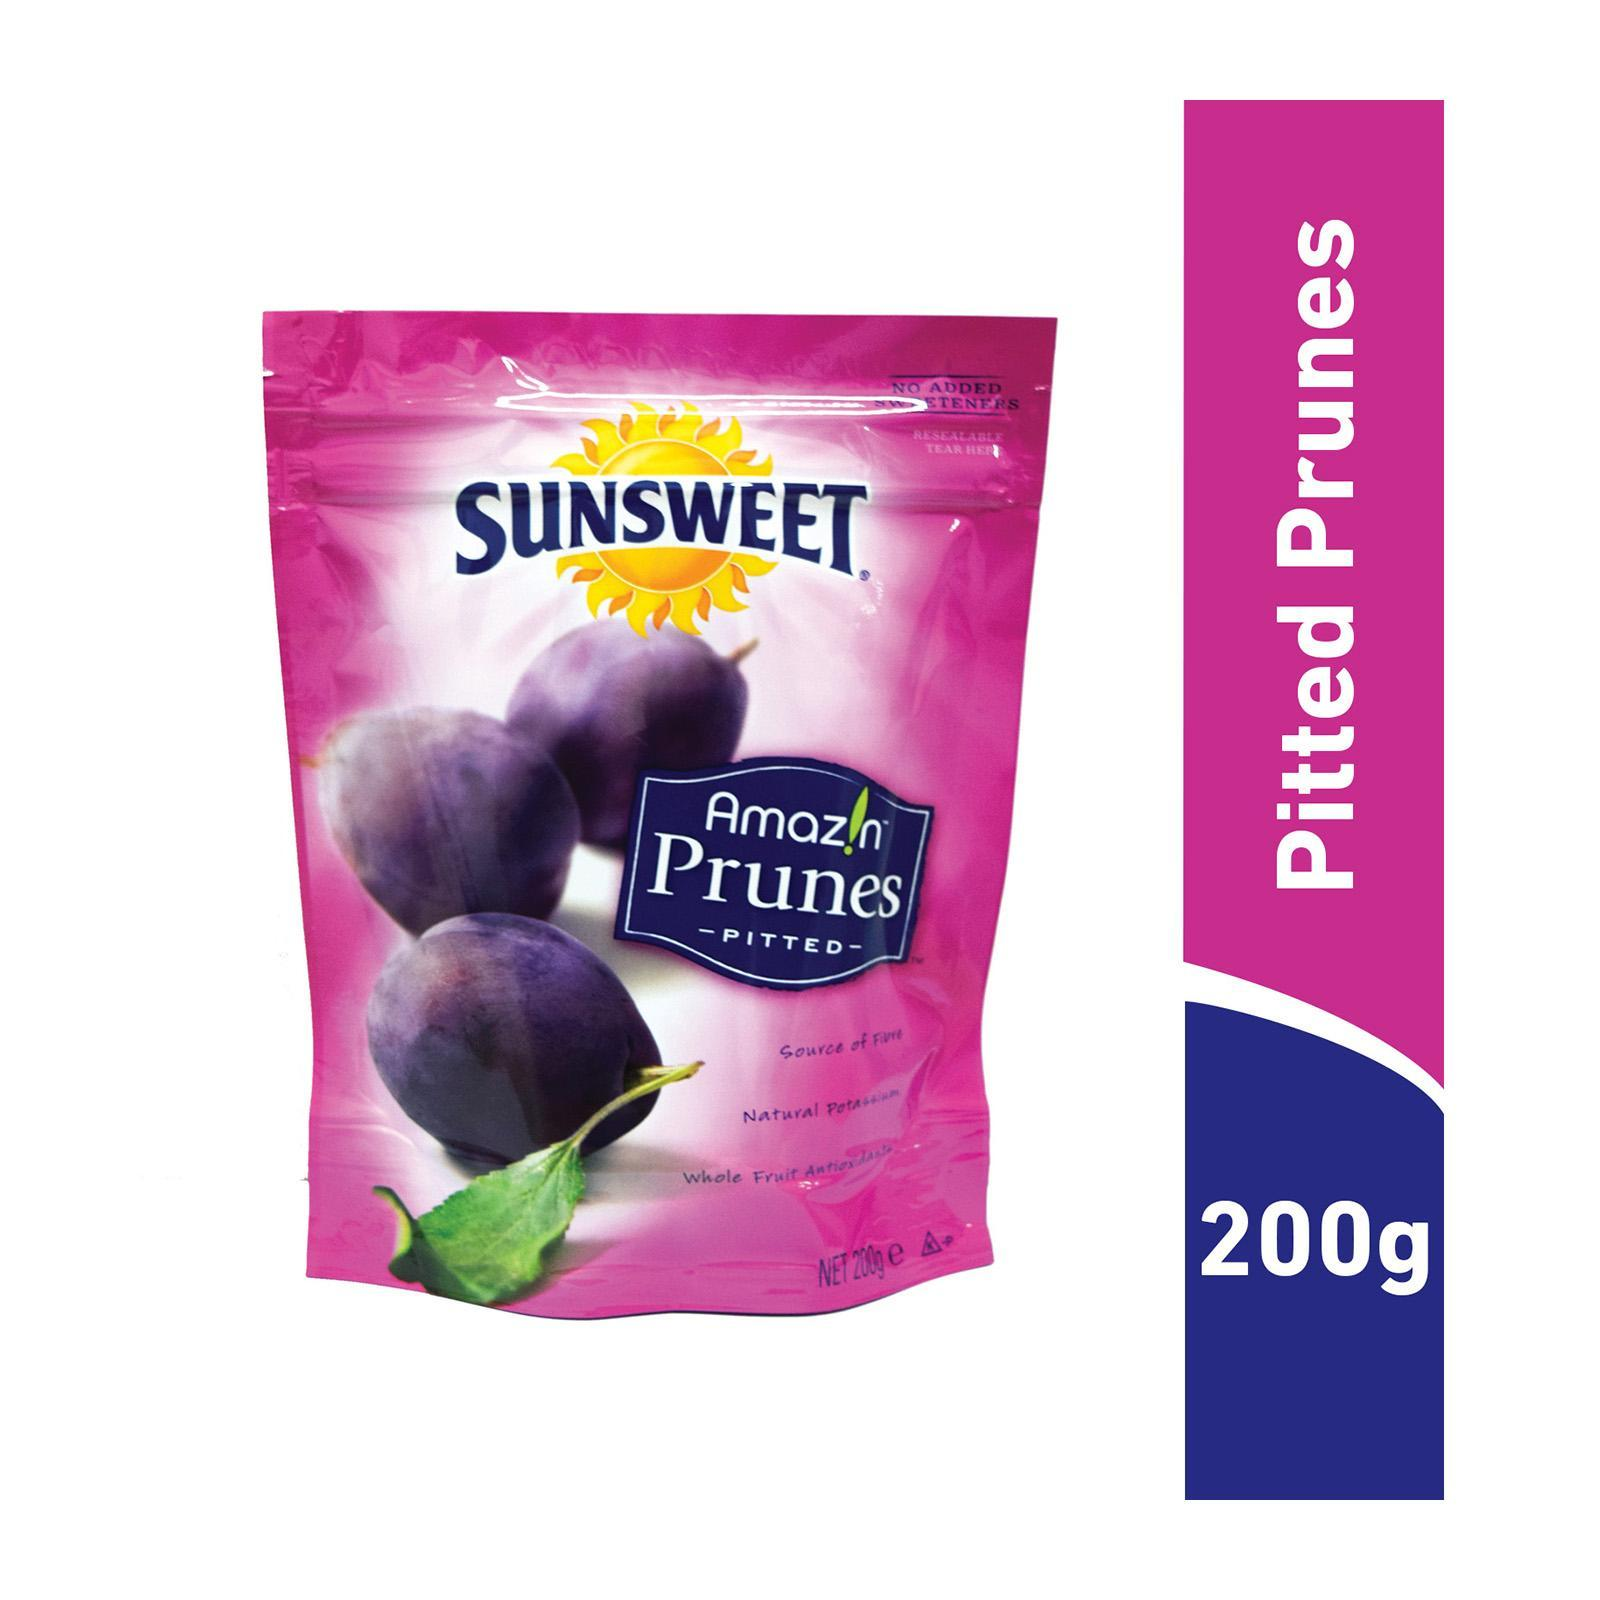 Sunsweet Ready To Eat Pitted Prunes